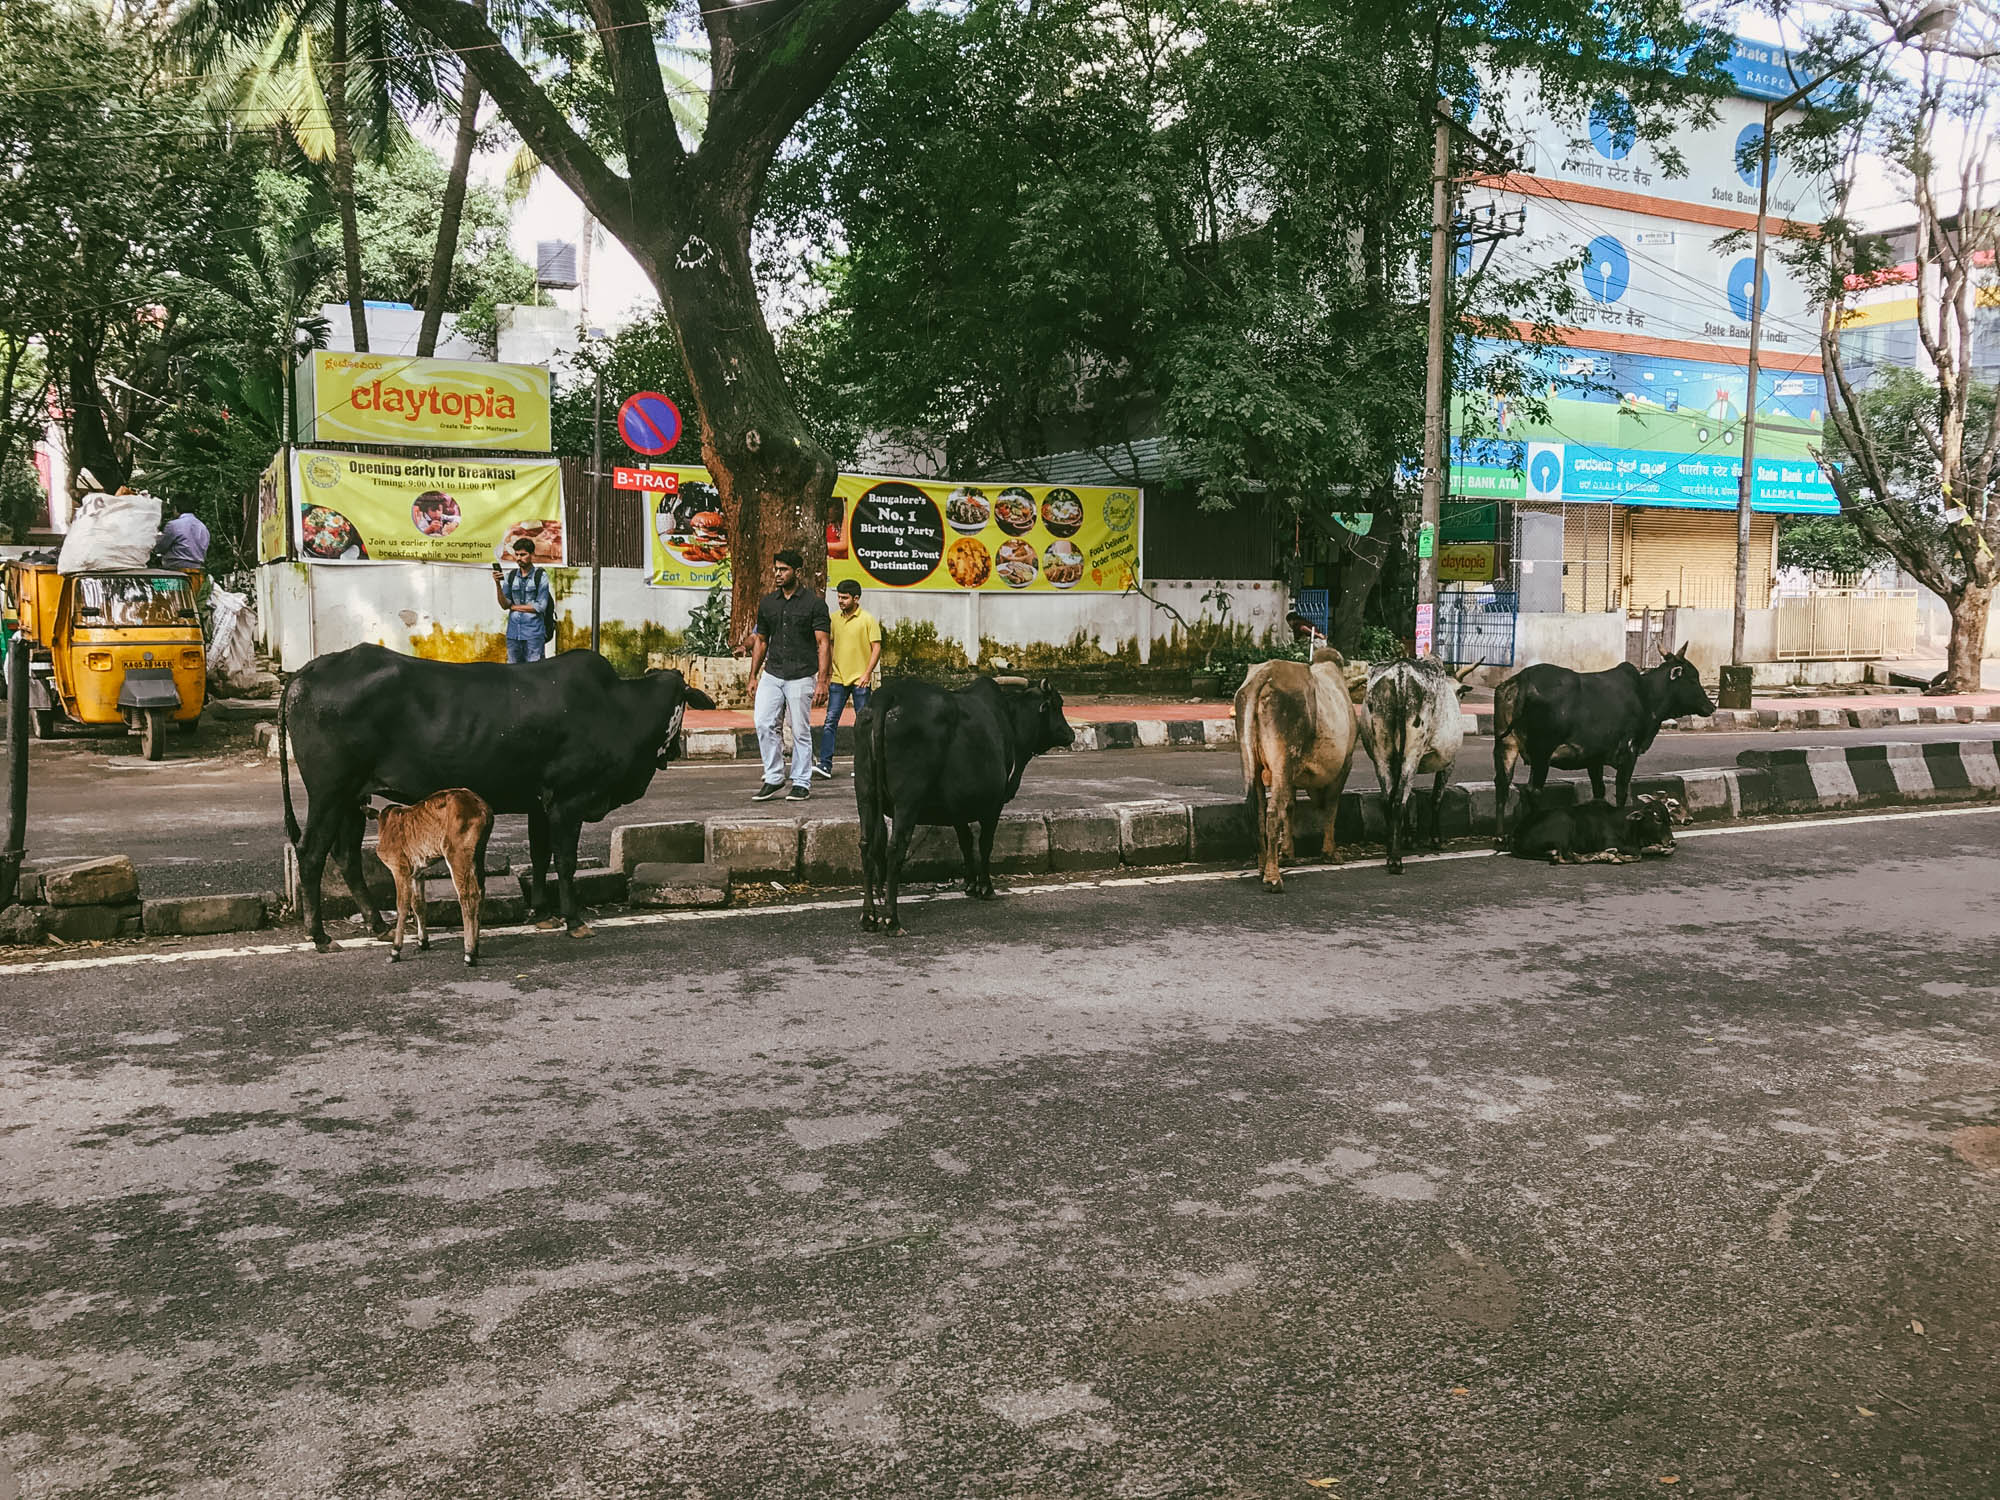 Normal commute in Bangalore - nothing to see here